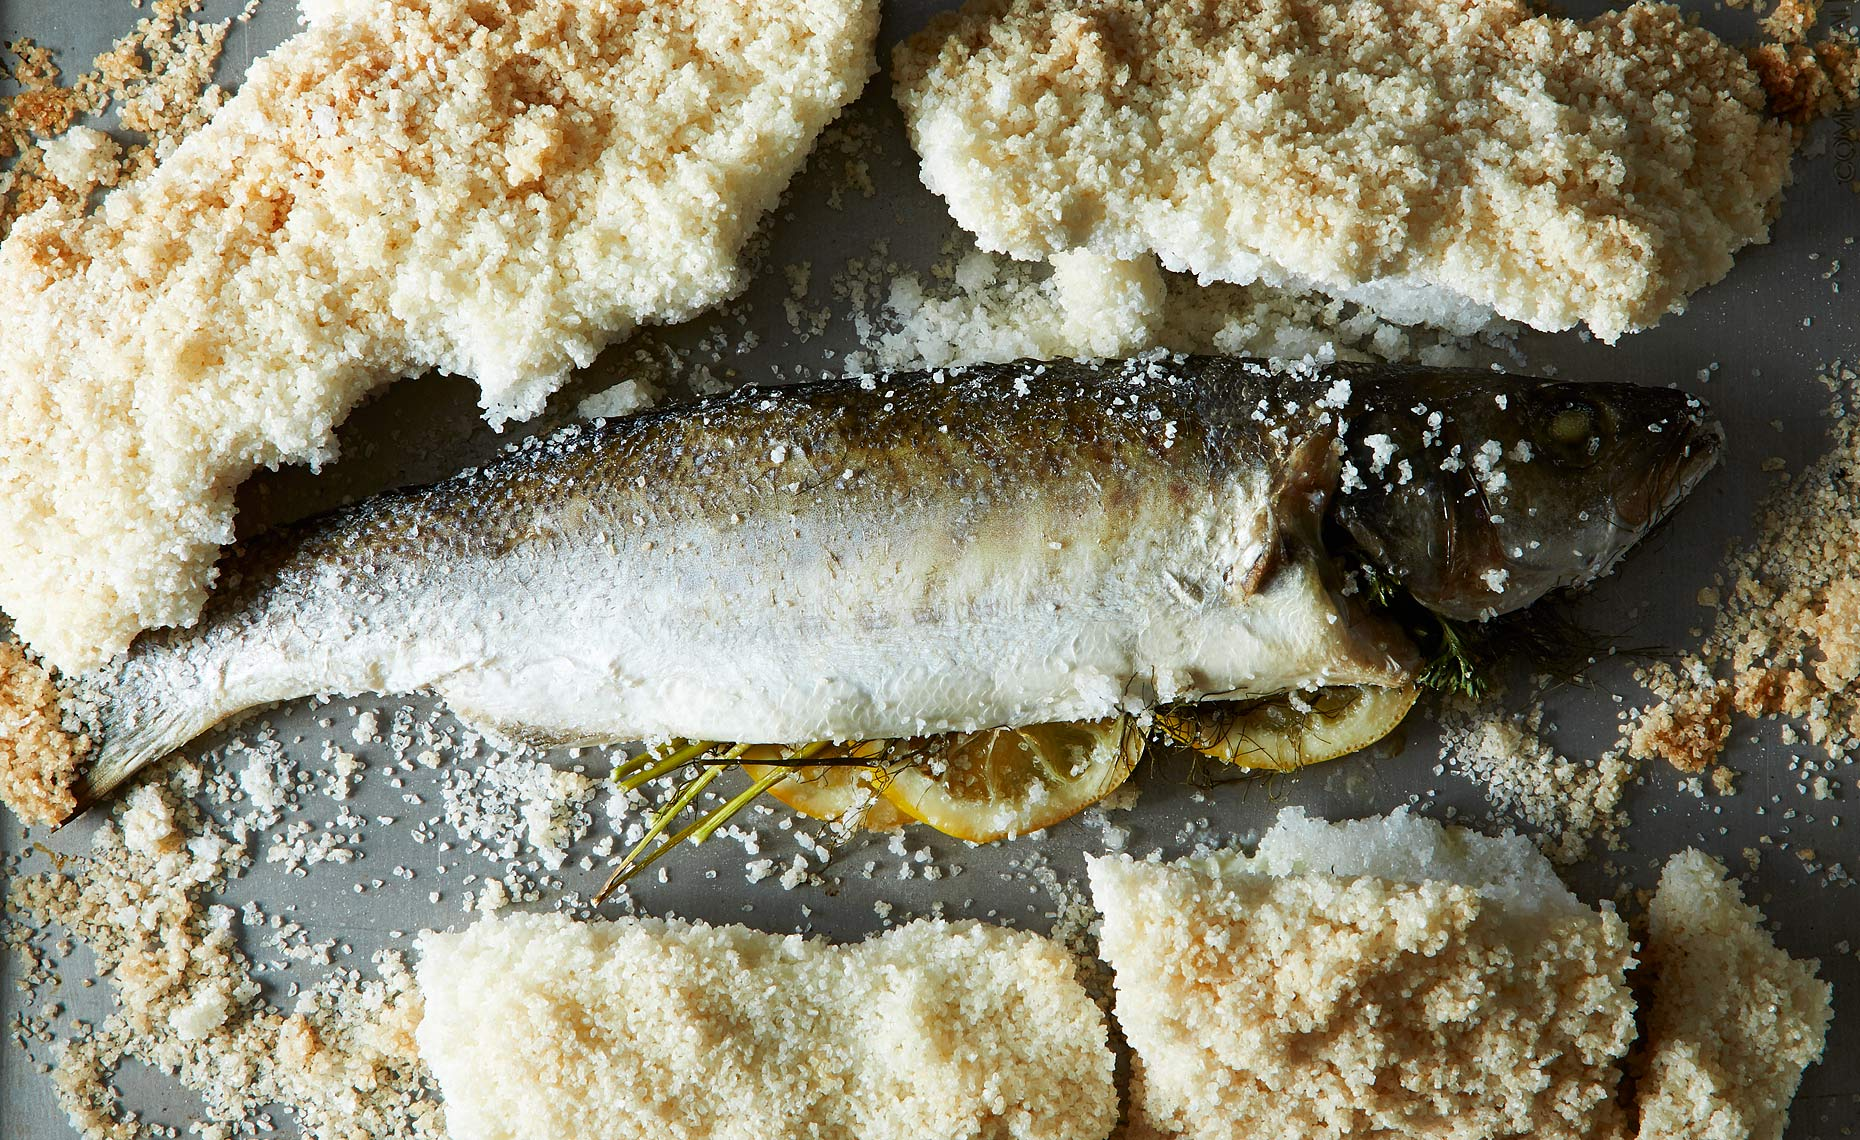 109_041_mark_weinberg_whole-baked-fish-in-sea-salt-_food52_05-06-14_0444